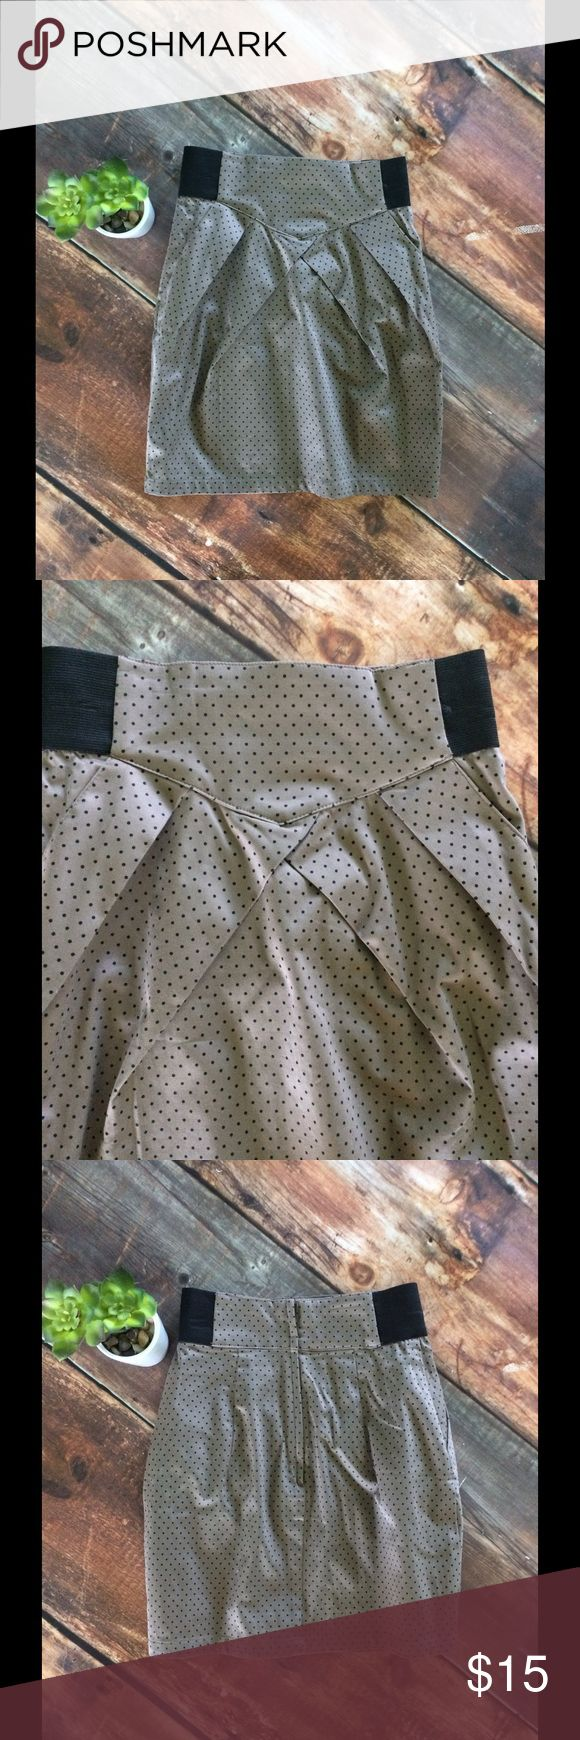 NWT H&M mini skirt Brand new with tags H and M never been worn beautiful tan and black small polka dot high waist pencil skirt with zipper and button closure in back. So cute! H&M Skirts Mini